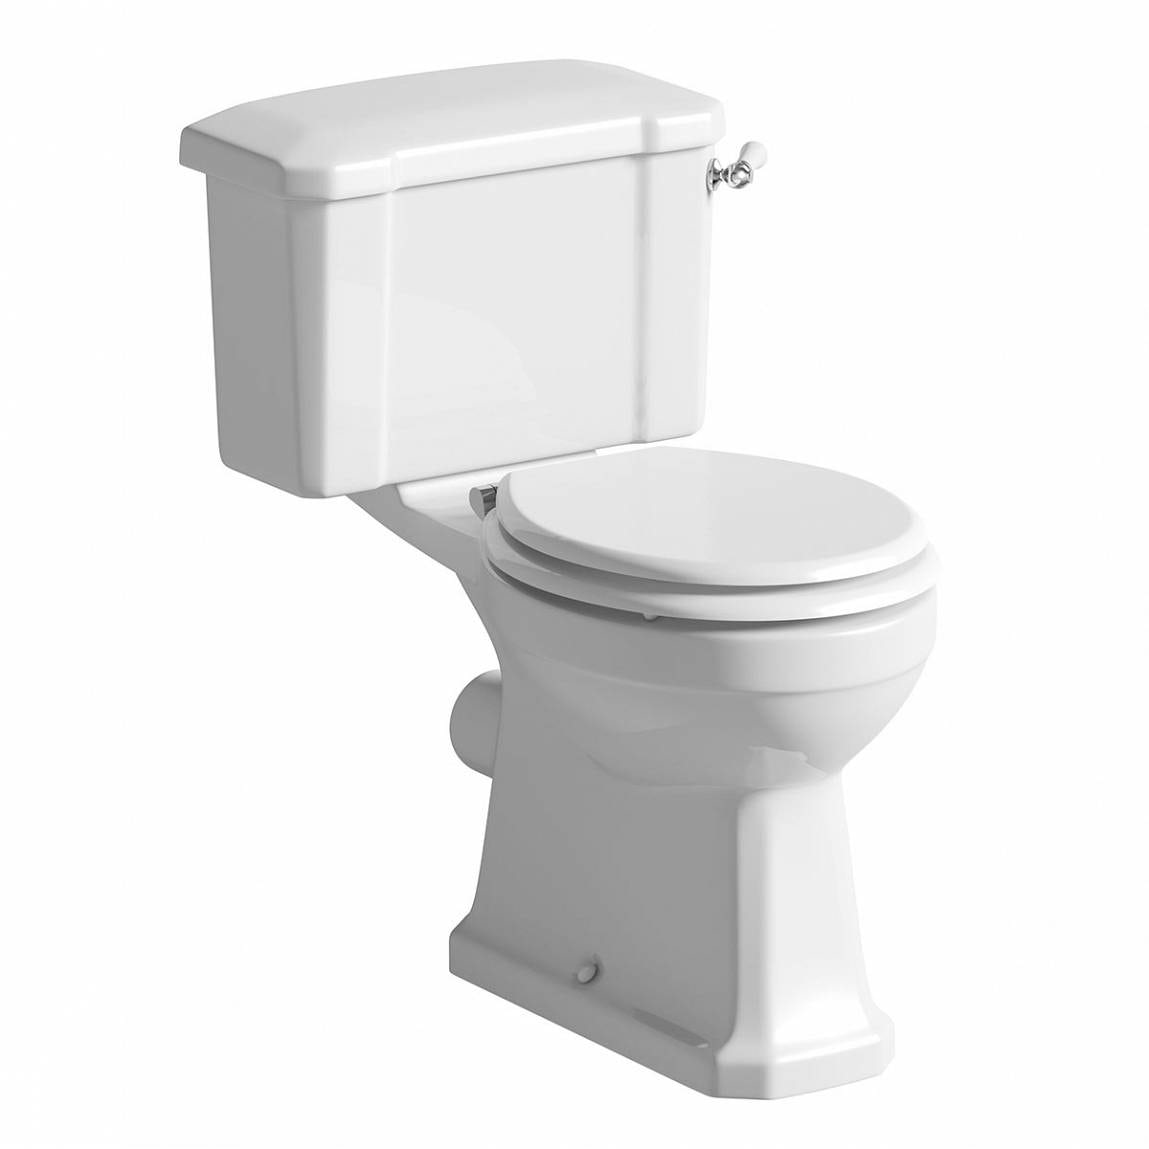 The Bath Co. Camberley close coupled toilet with wooden soft close seat white with pan connector